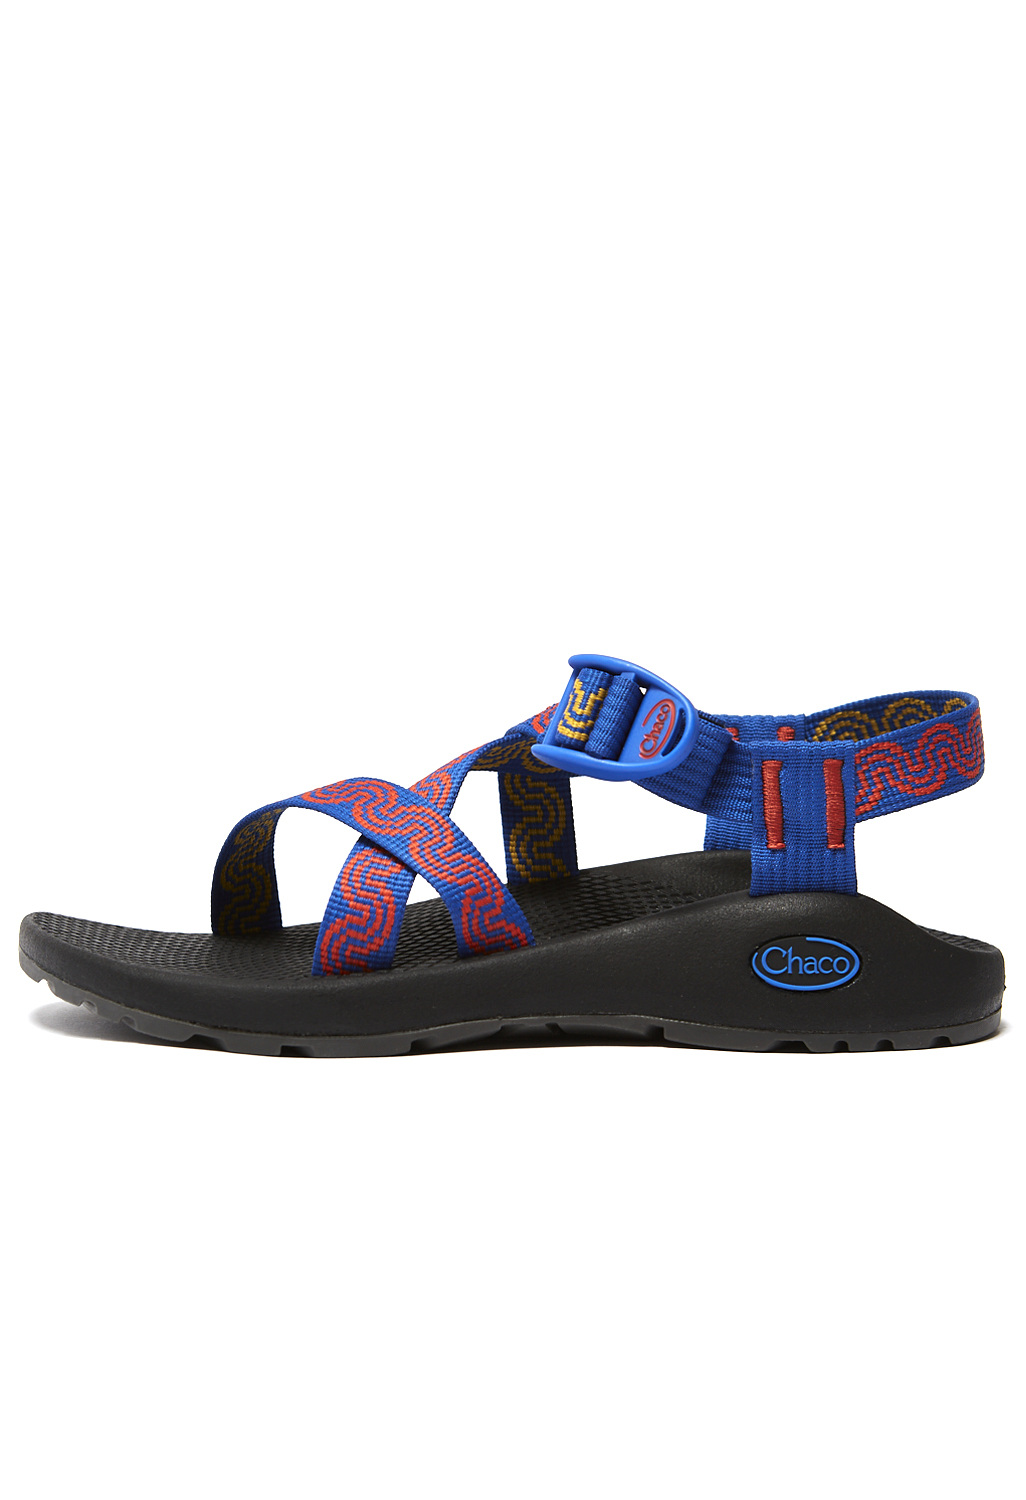 Chaco Women's Z/1 Classic Sandals 0